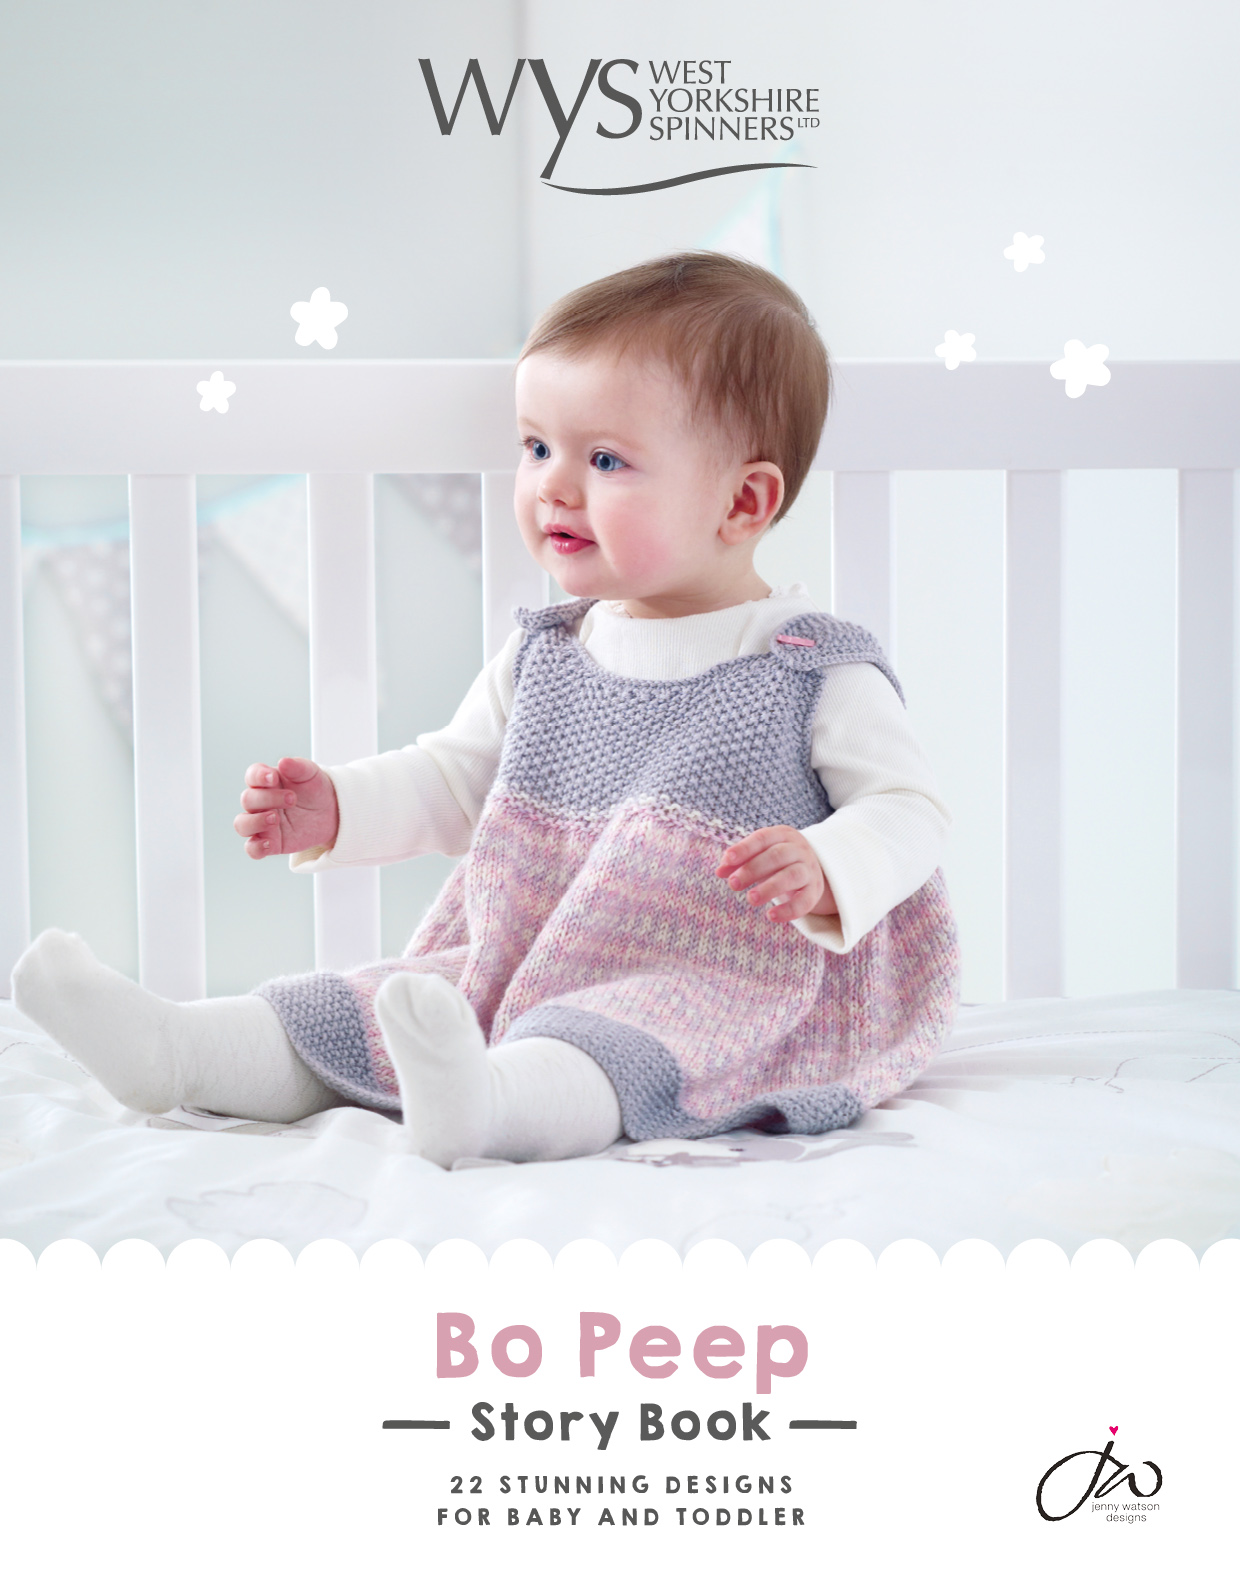 West Yorkshire Spinners Bo Peep – Story Book 1: Pattern Book product image